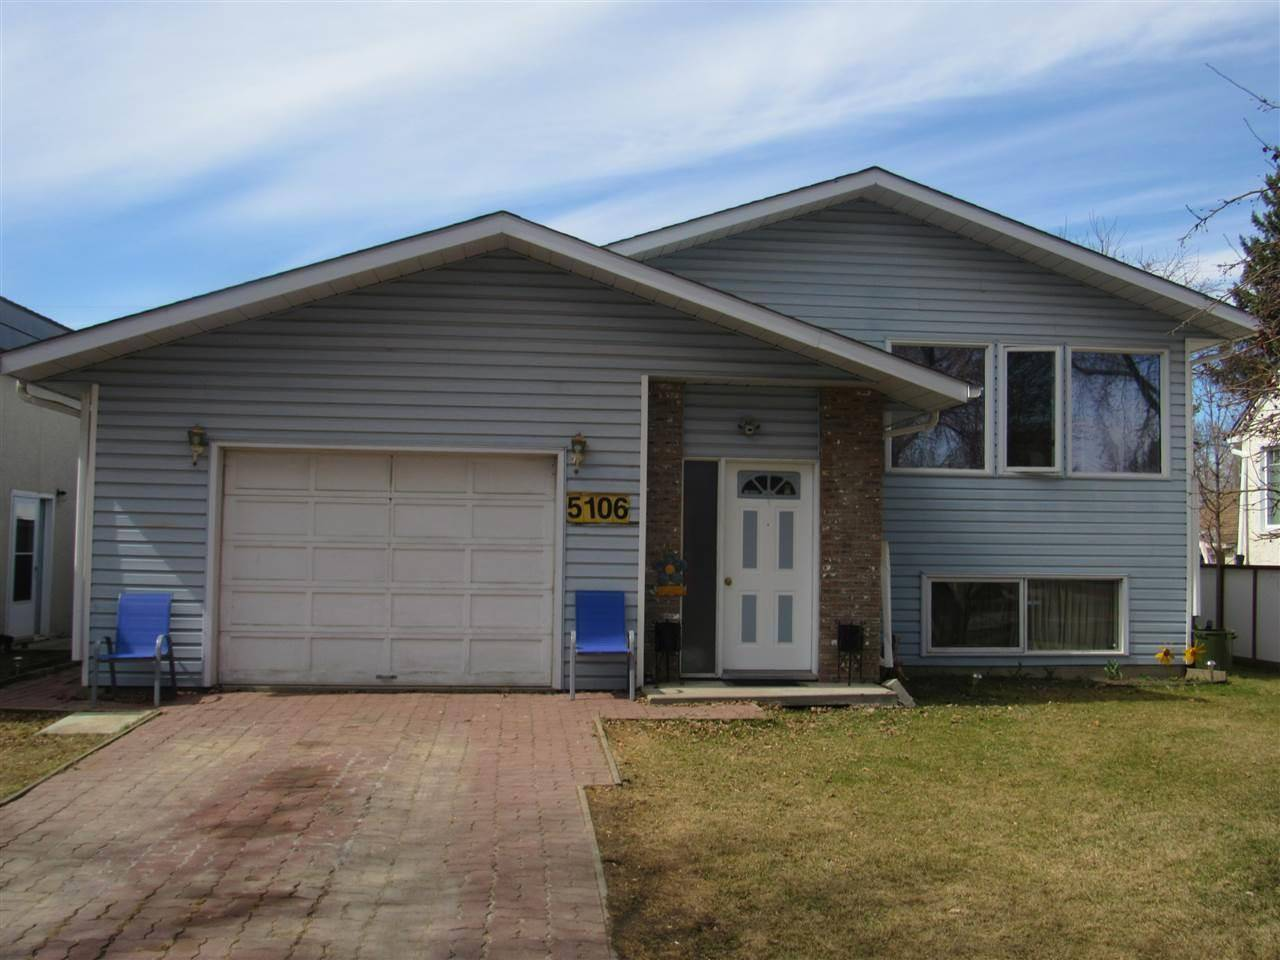 House for sale at 5106 53 St Barrhead Alberta - MLS: E4178062